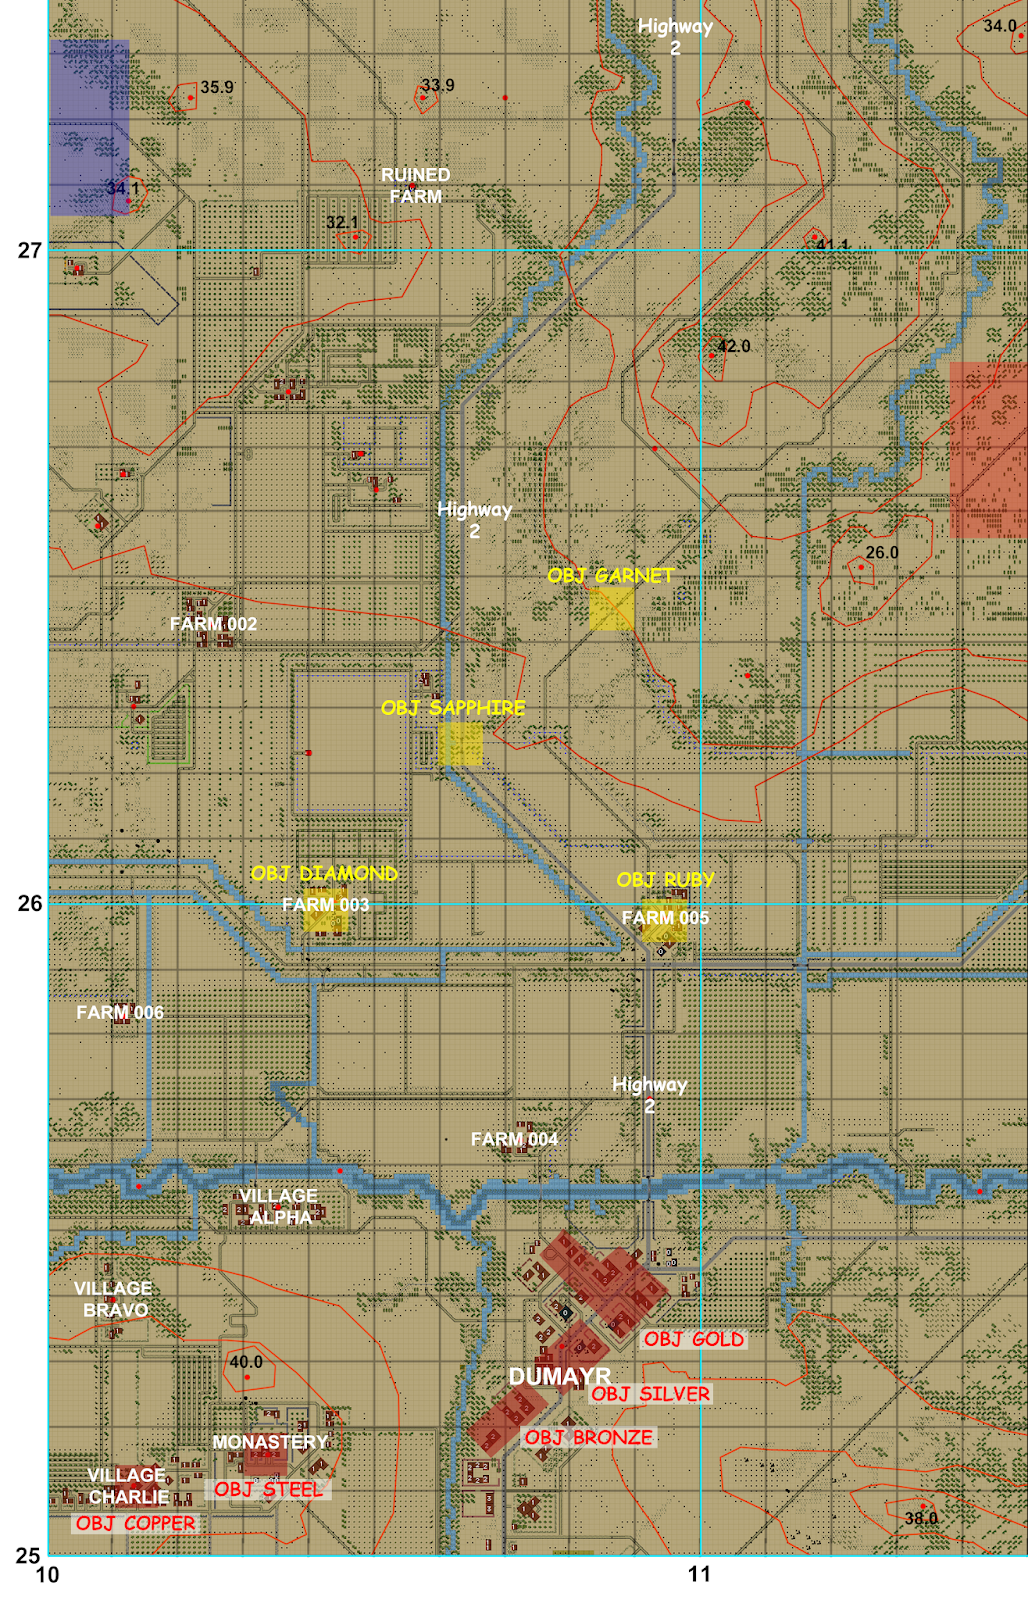 MAP-TOPO+-+OBJECTIVES.png